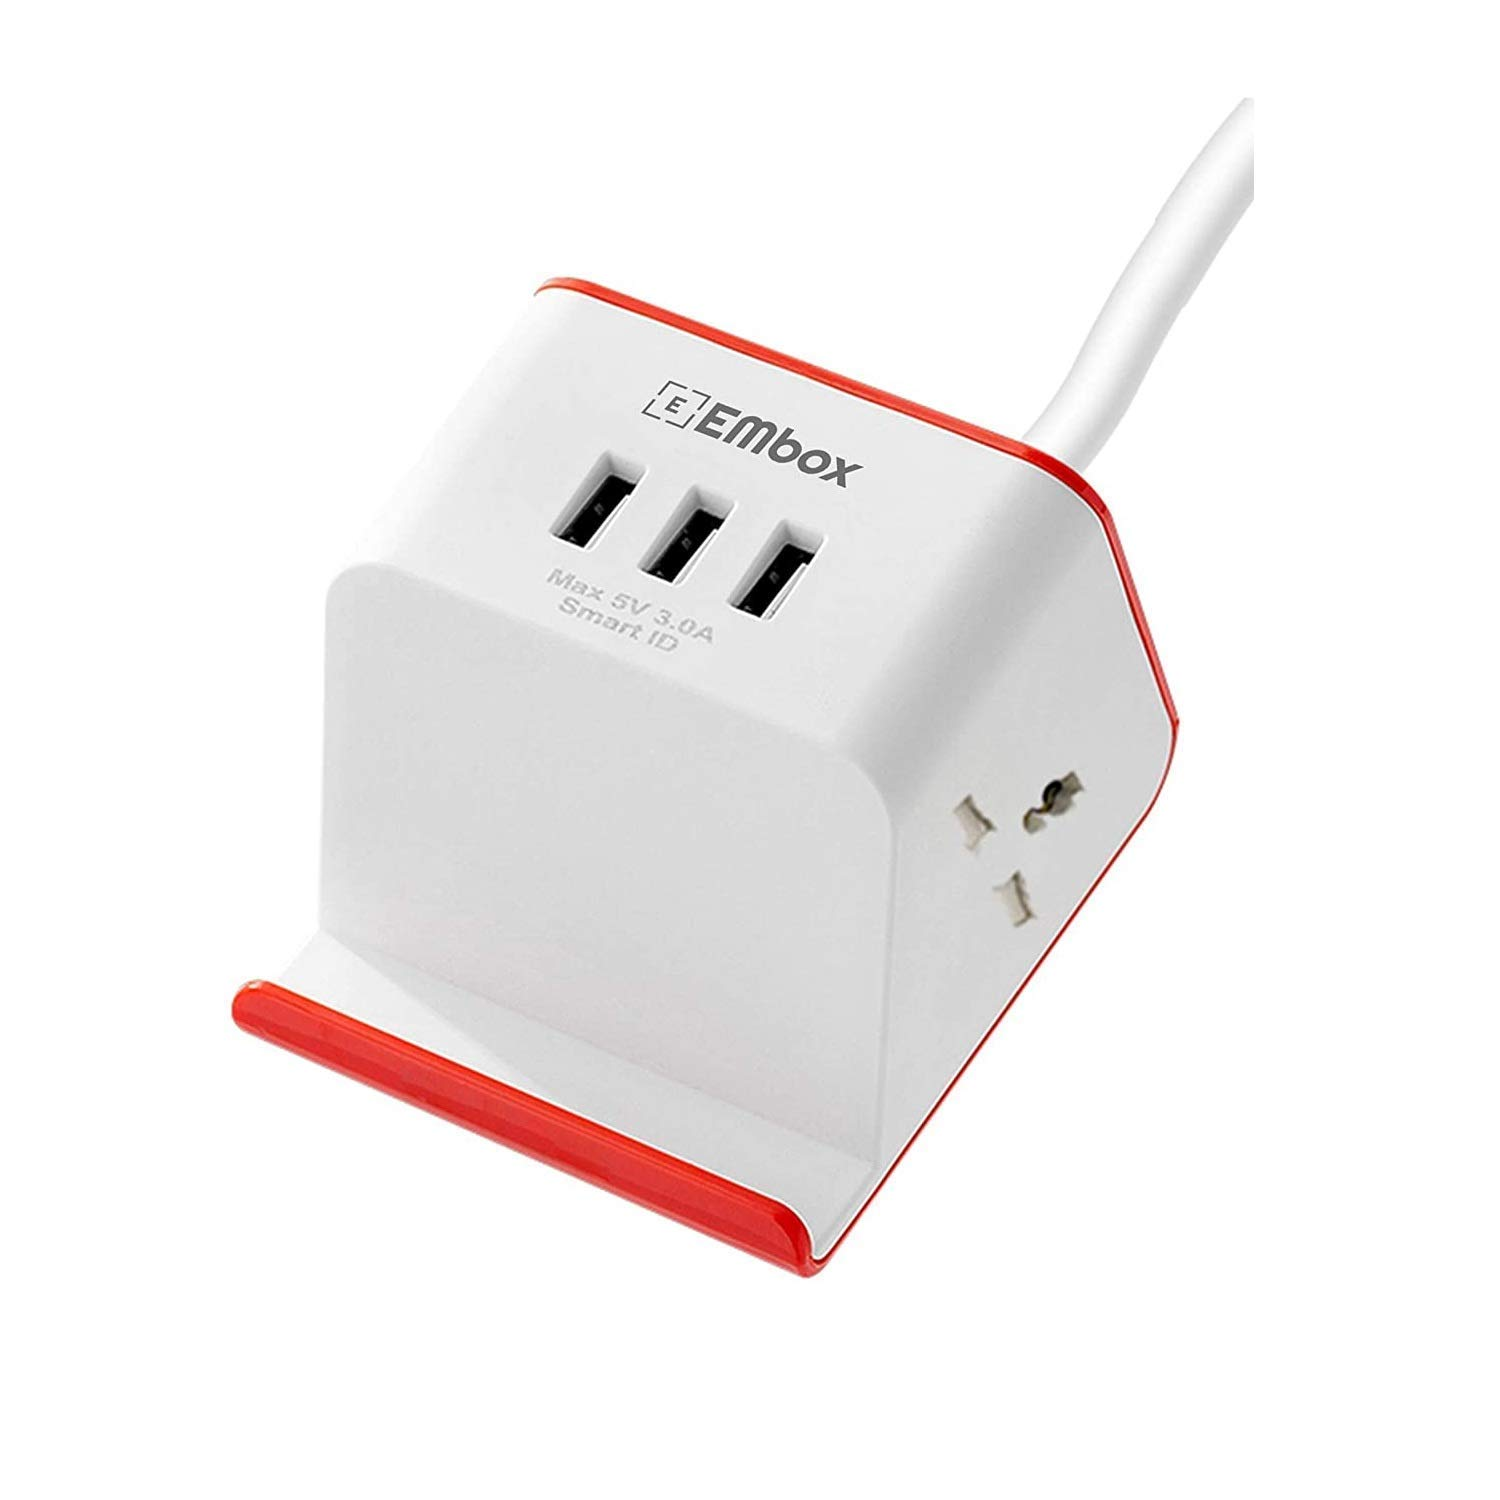 EMBox Extension Cord